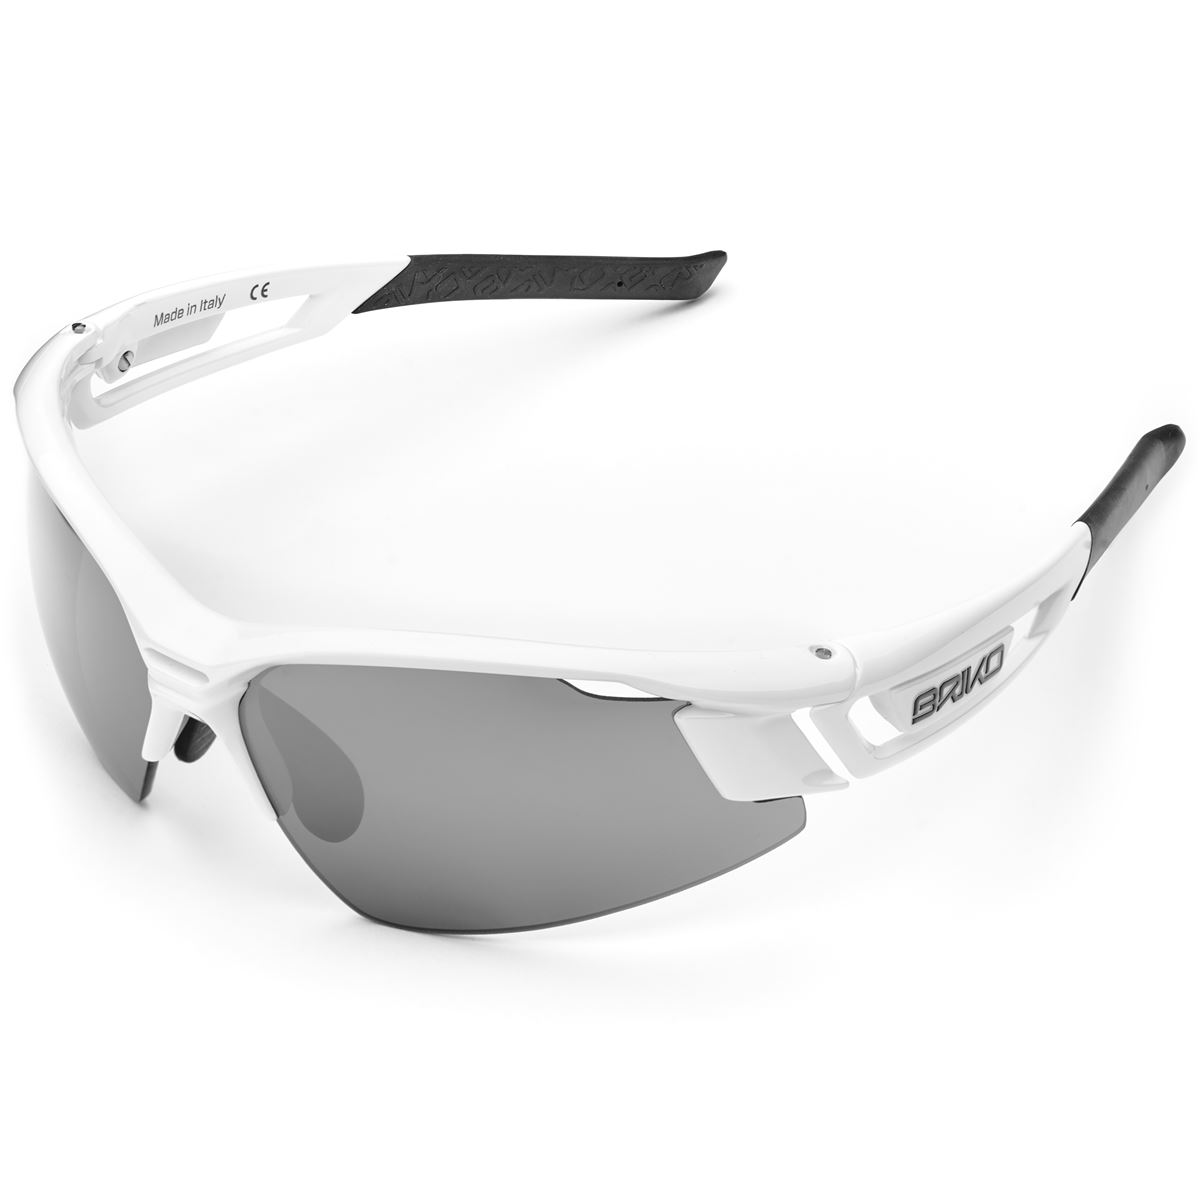 Briko GLASSES URAGANO Man Woman CYCLING MOUNTAIN BIKE Sunglasses